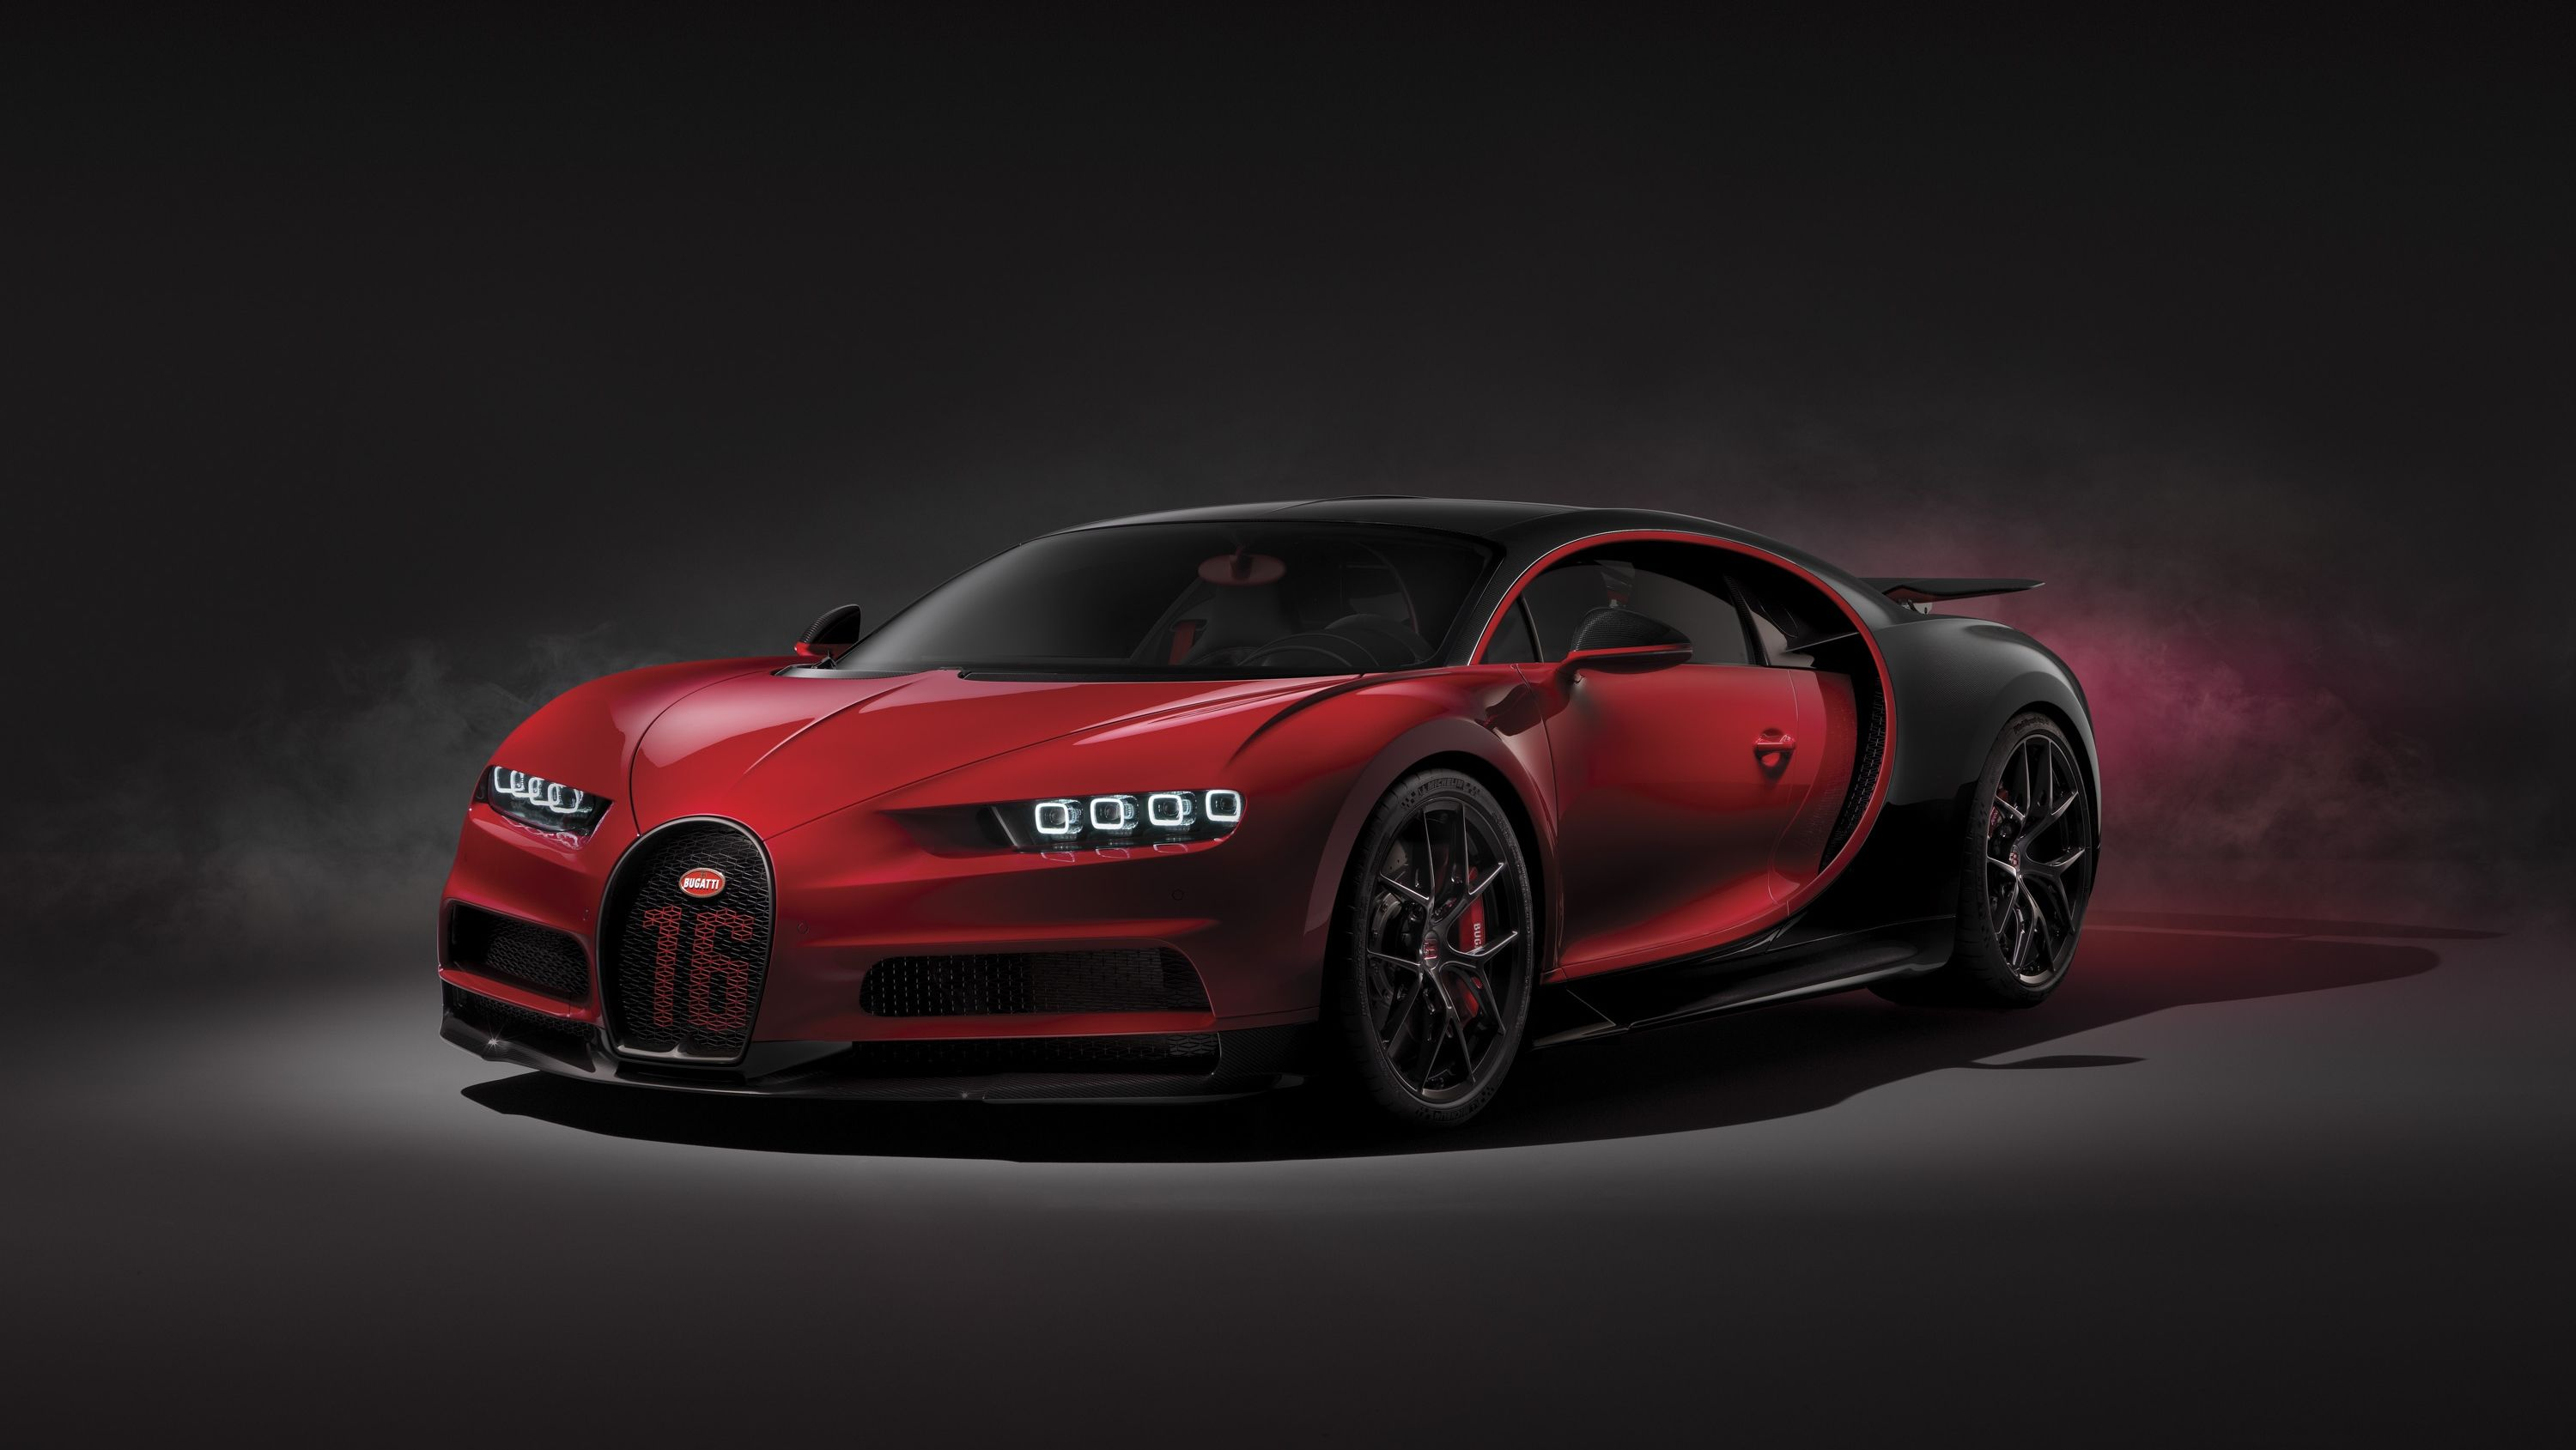 The Buggati Chiron Sport Weighs Less Gets Carbon Fiber Wipers And A New Exhaust Layout Costs An Extra 1 Million Top Speed Bugatti Chiron Sport Bugatti Chiron New Bugatti Chiron